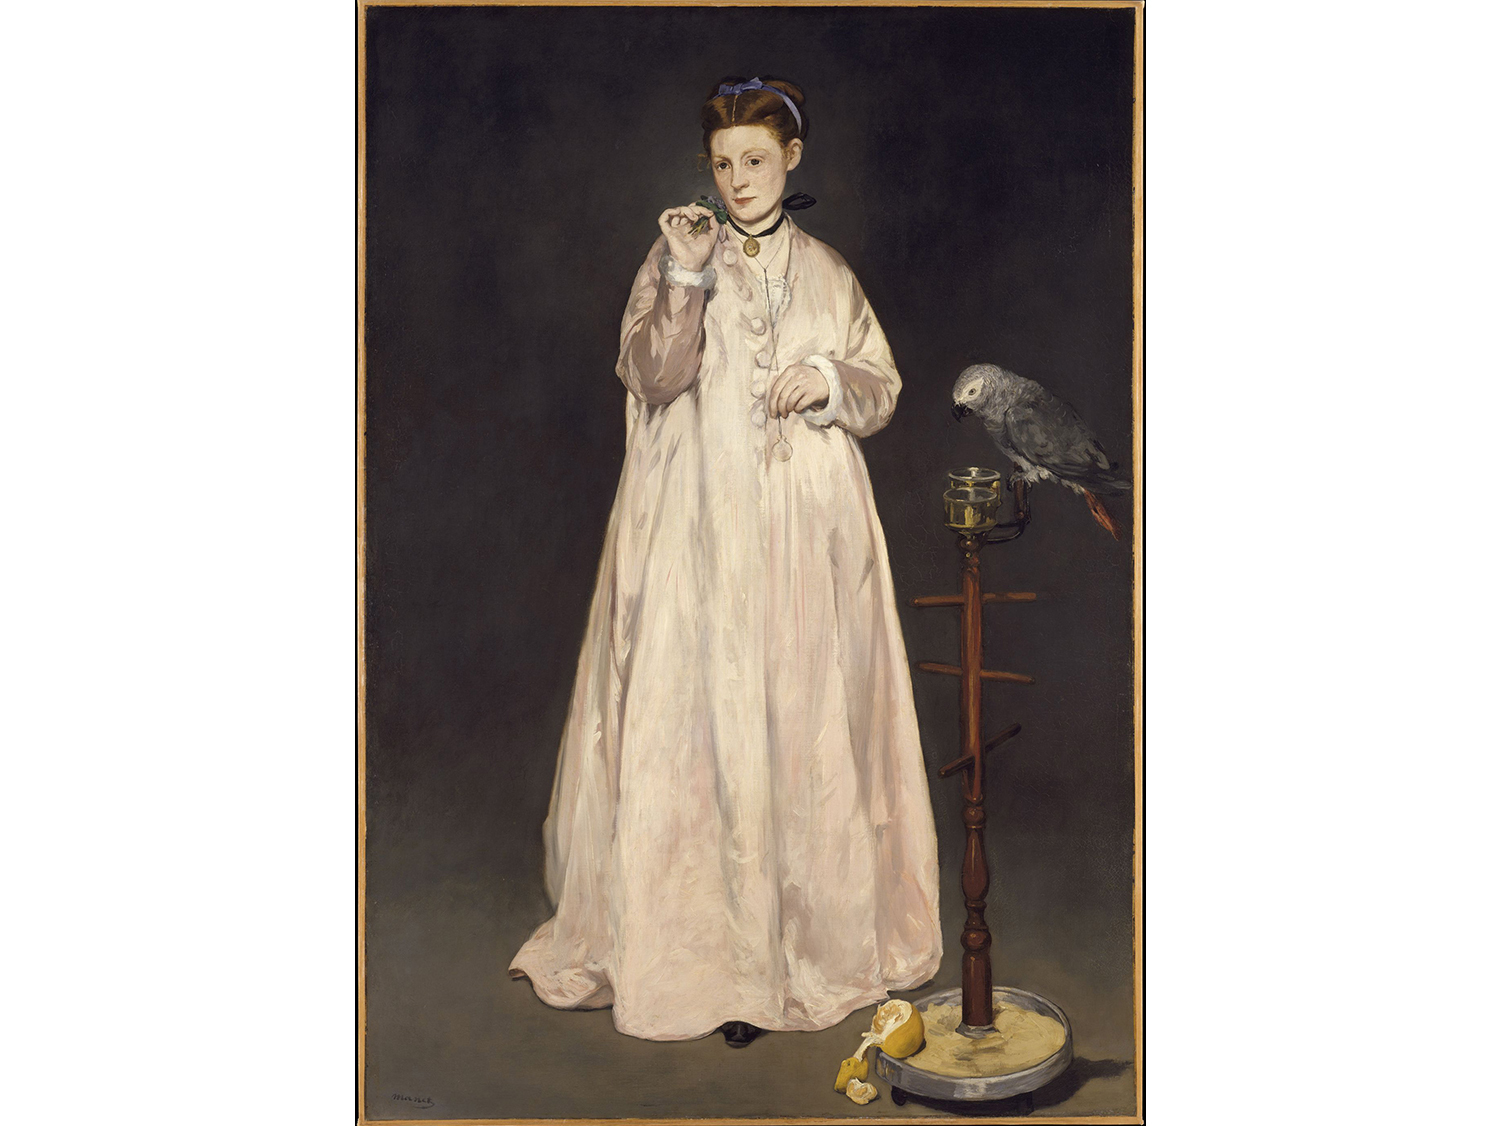 Édouard Manet, Young Lady in 1866, 1866